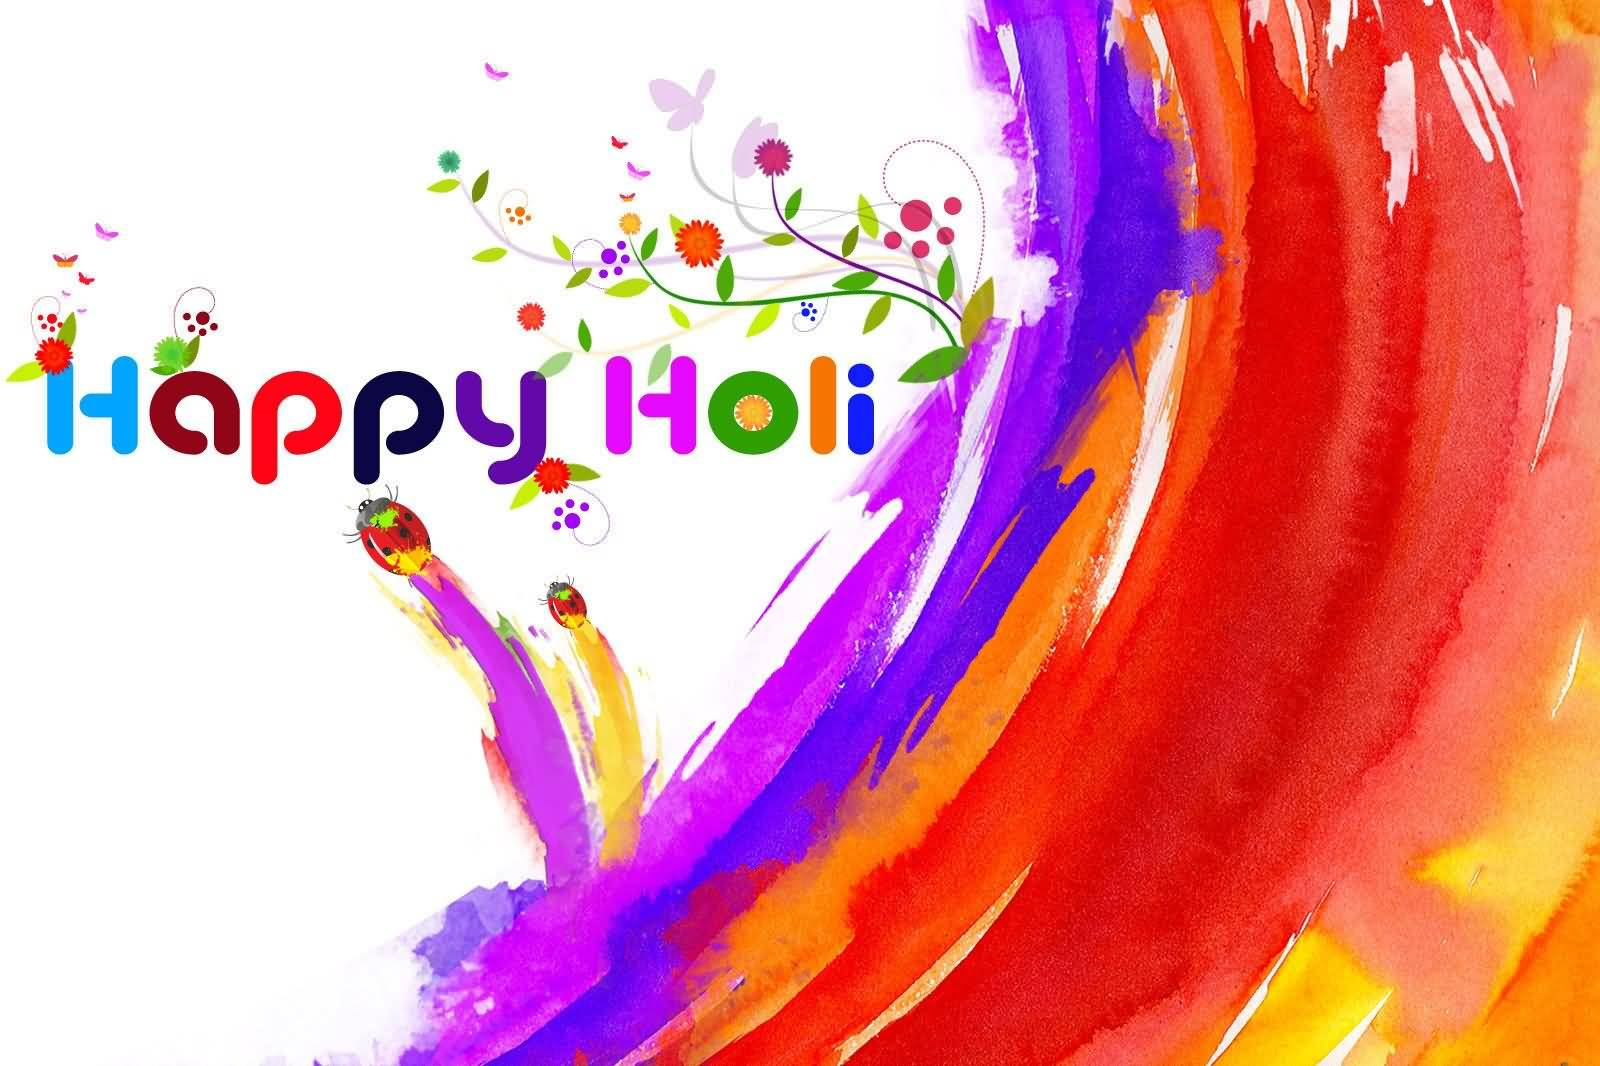 Elegant Holi Wish